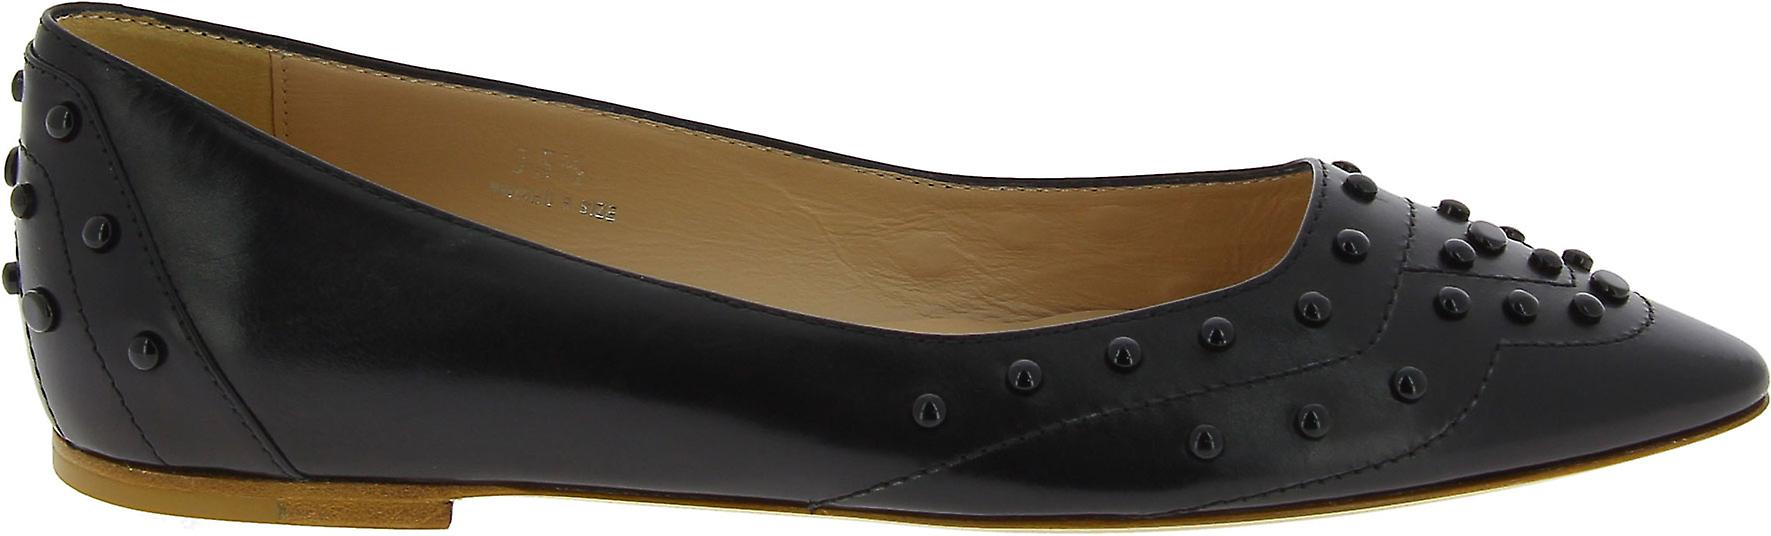 Tod's Women's Fashion Pointed toe studded ballet flats shoes in black leather